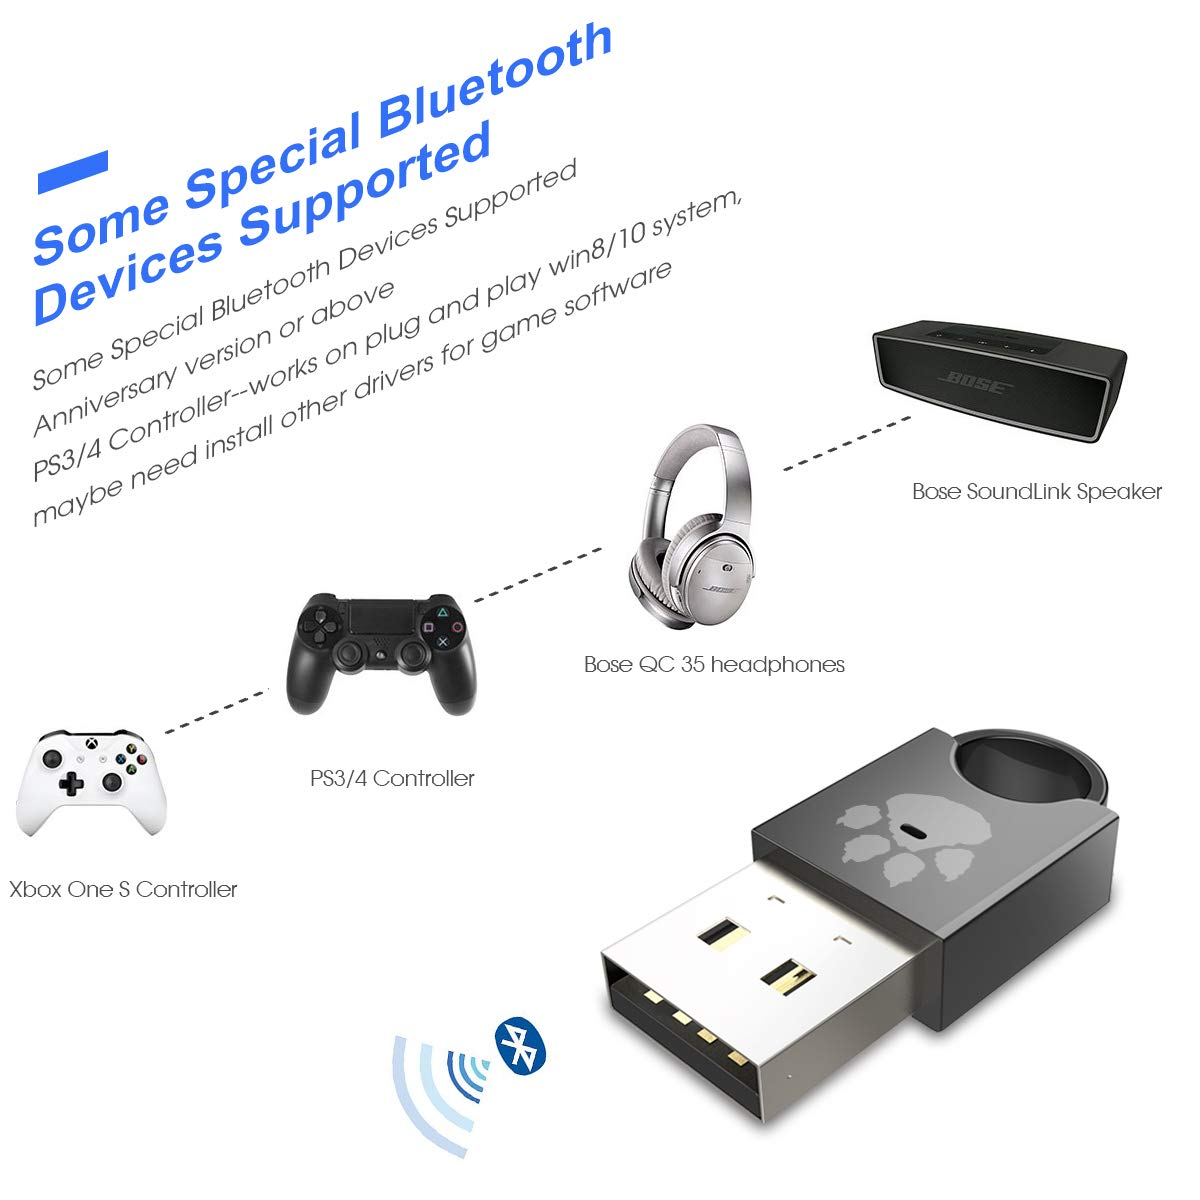 USB Bluetooth 4.0 Adapter Dongle for PC Laptop Computer Desktop Music Keyboard, Mouse, for Windows 10 8.1 8 7 XP Vista